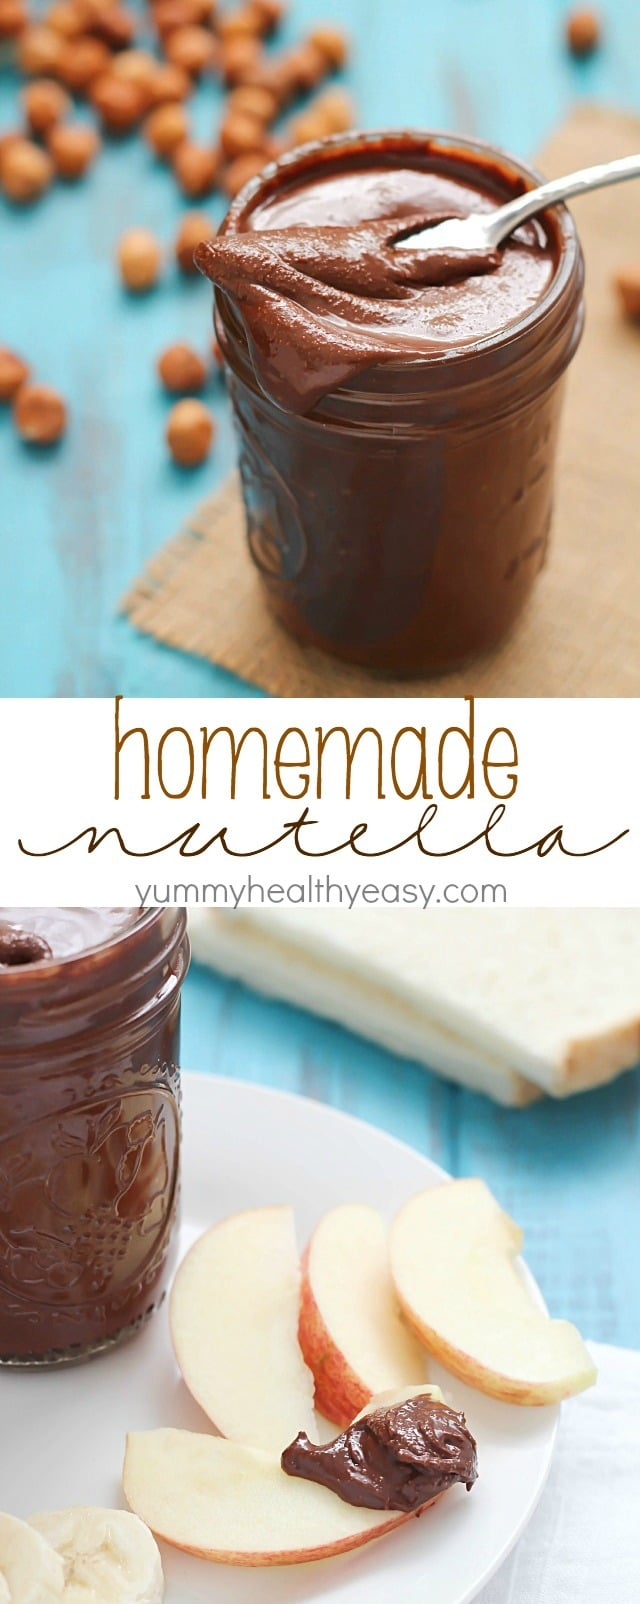 Homemade Nutella - Yummy Healthy Easy